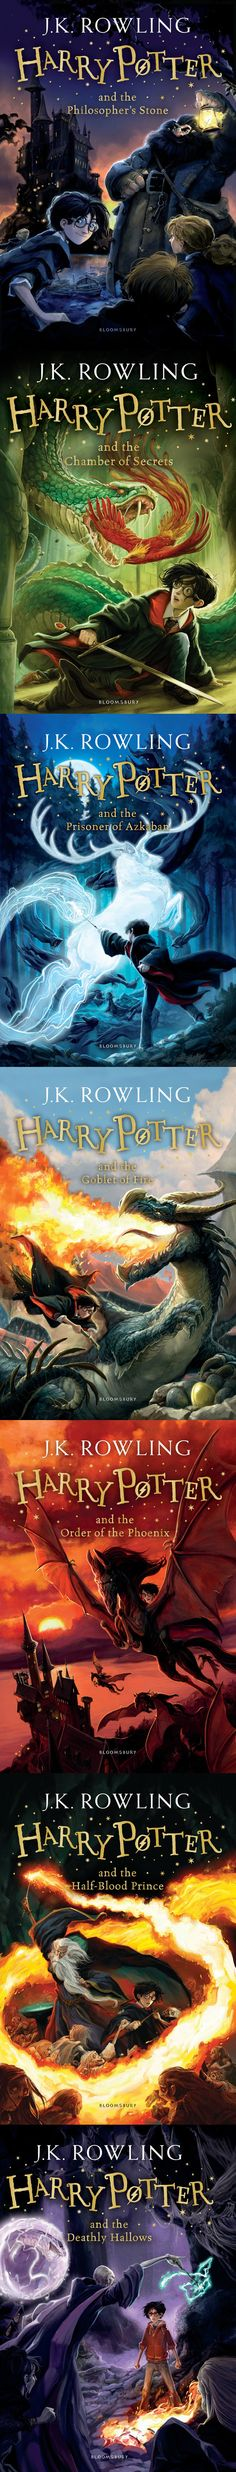 "The new ""Harry Potter"" covers!"